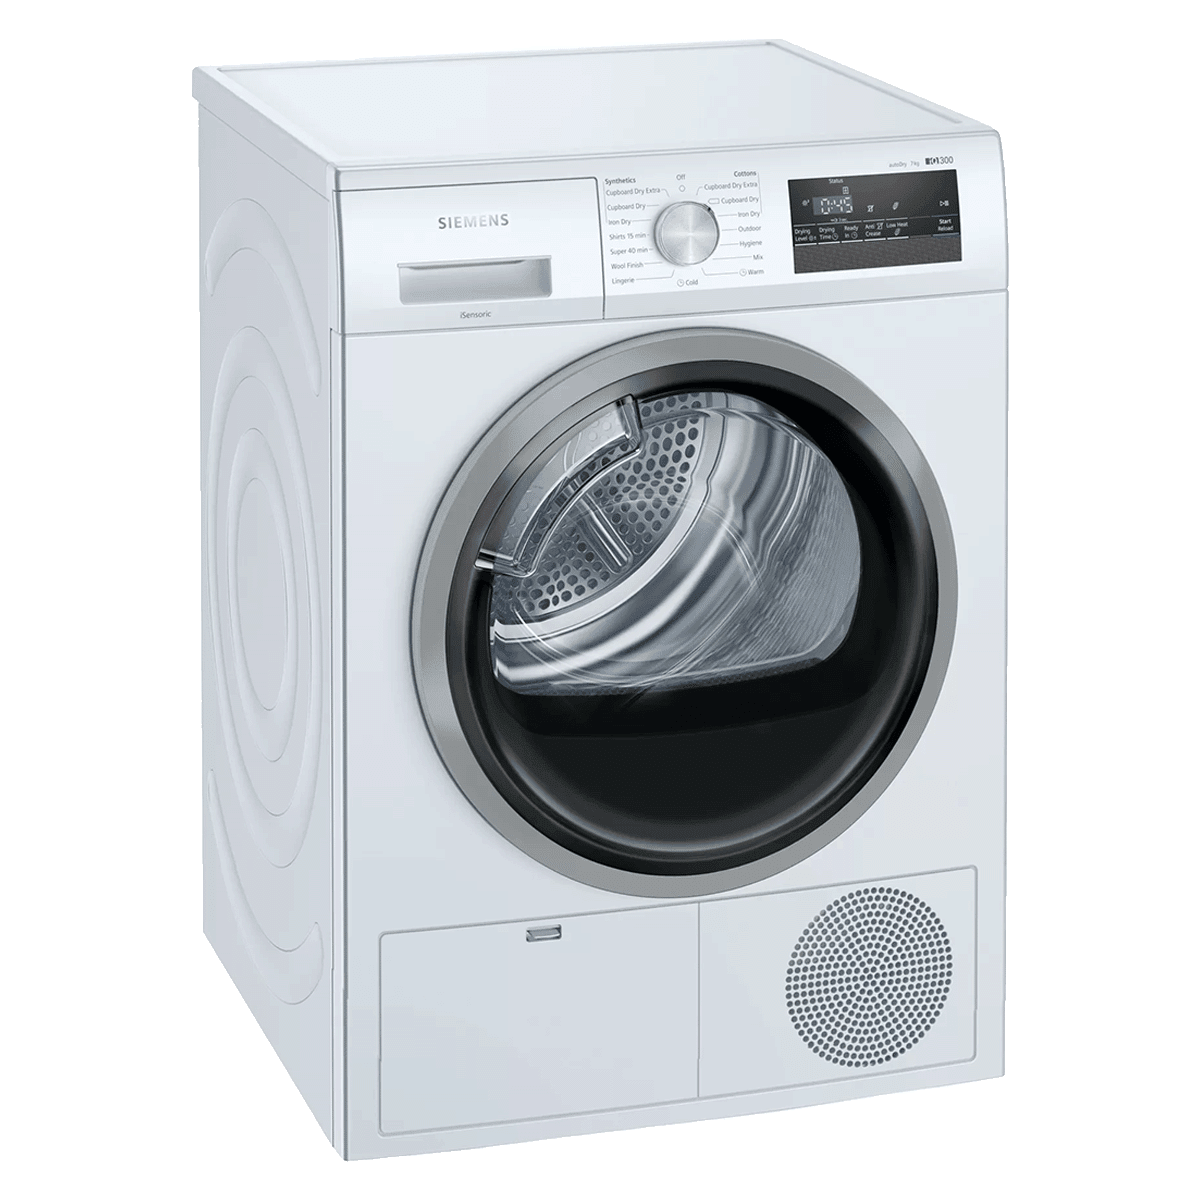 Siemens 7 kg Fully Automatic Front Loading Dryer (WT46N203IN, White)